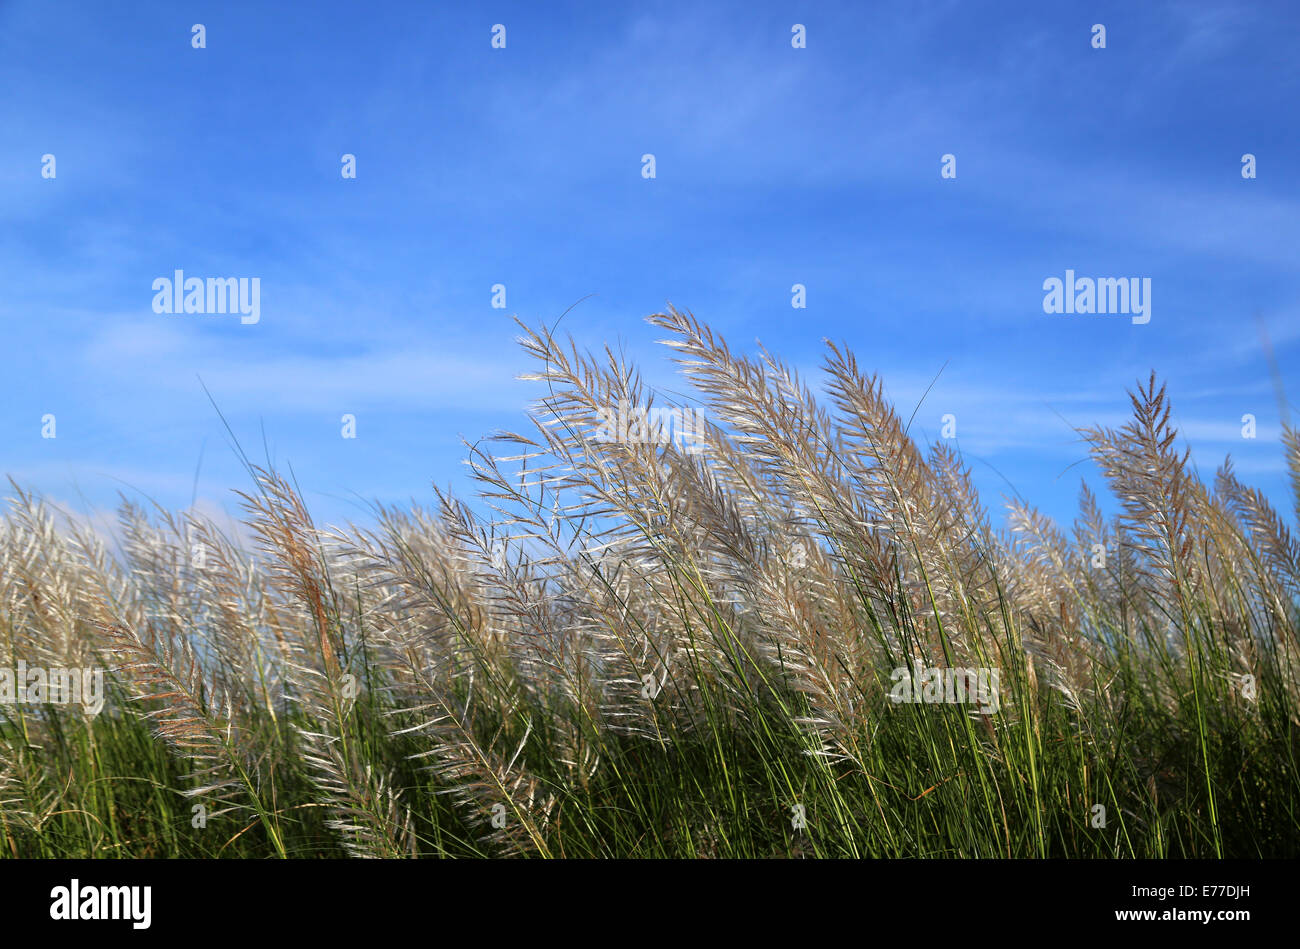 Saccharum spontaneum or Kans grass locally known as the Kash flower in Bangladesh - Stock Image